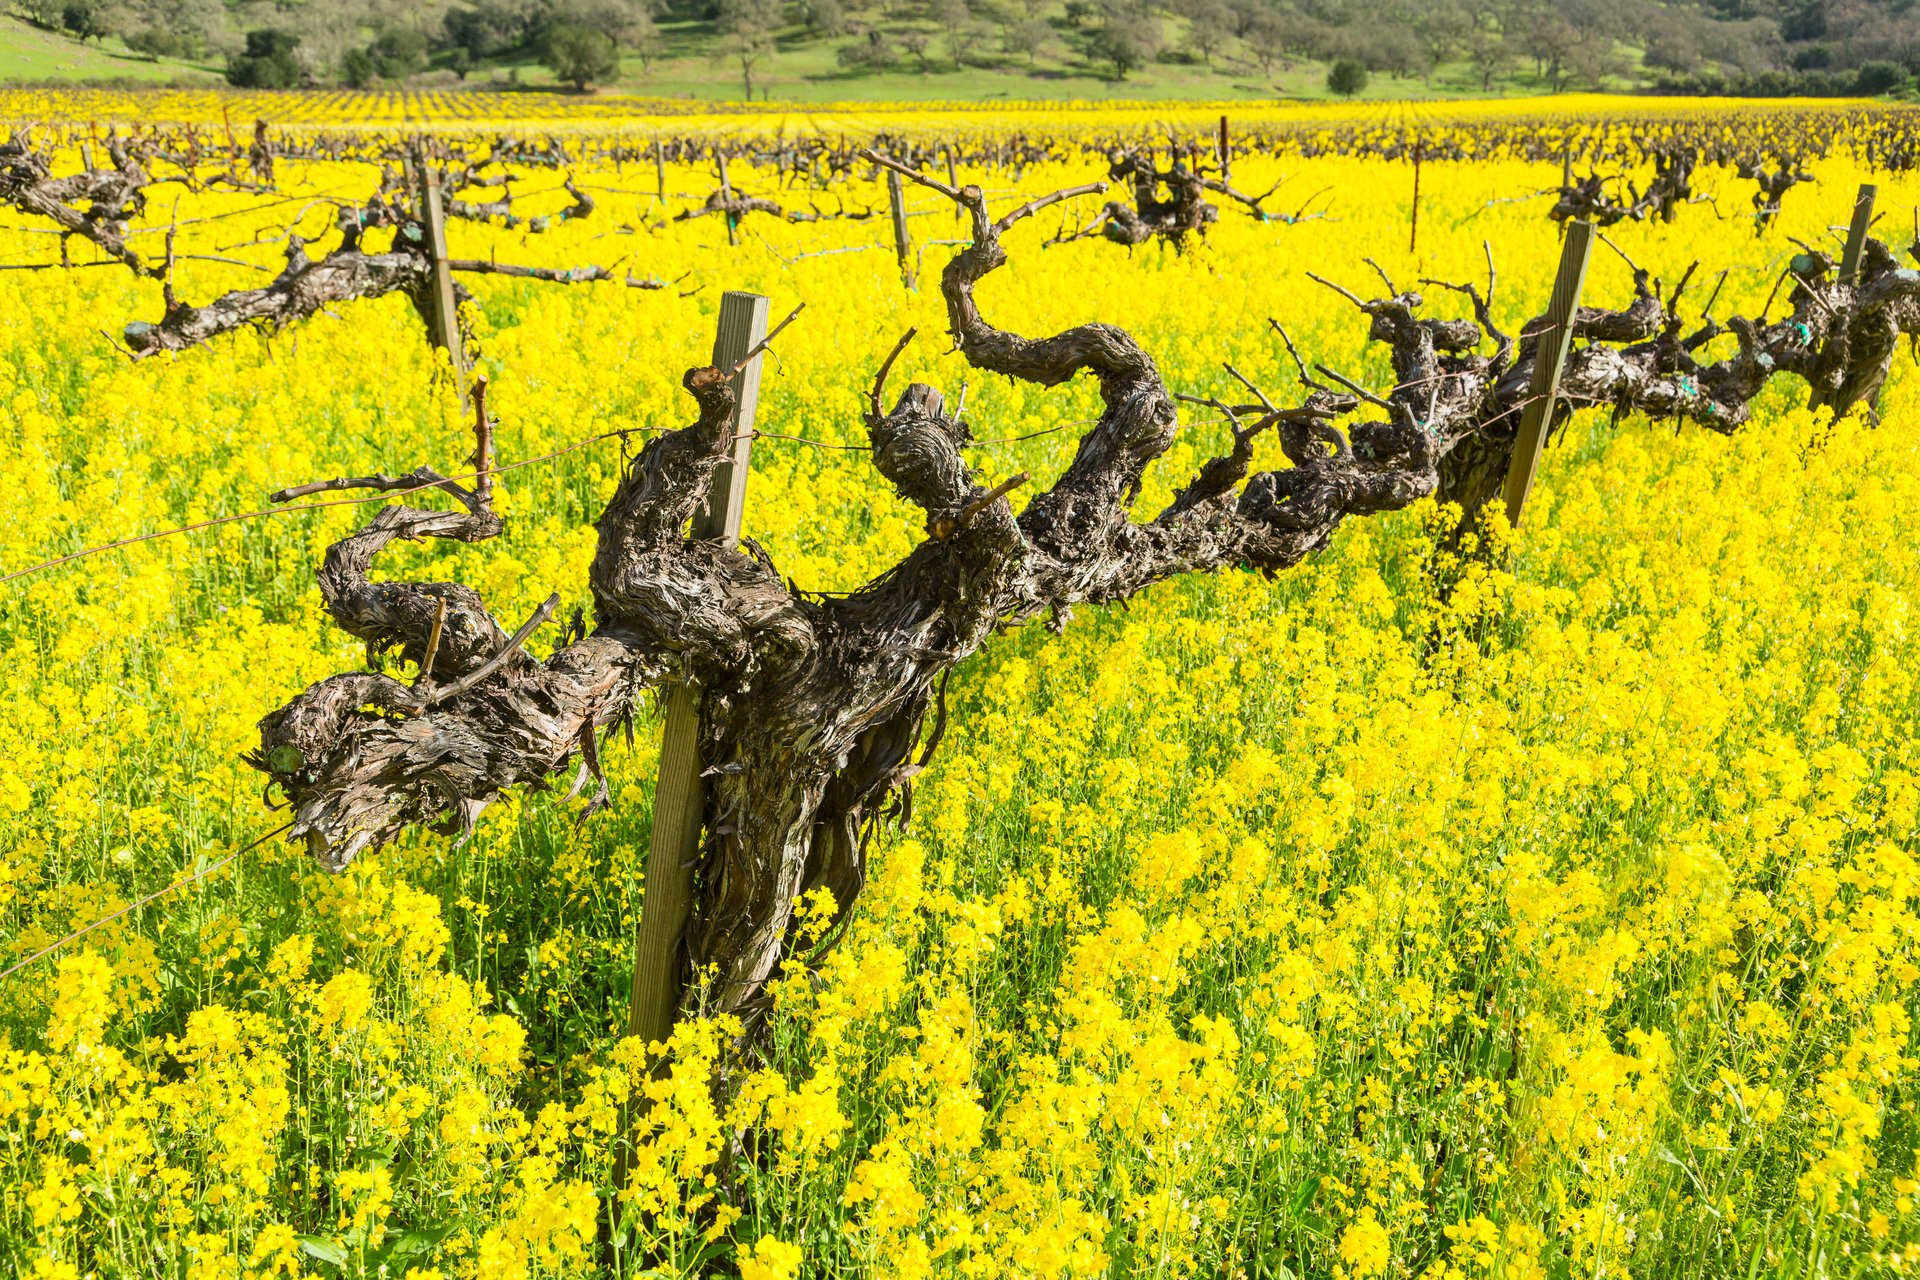 Mustard Bloom in Napa Valley Vineyards in San Francisco - Best Season 2020